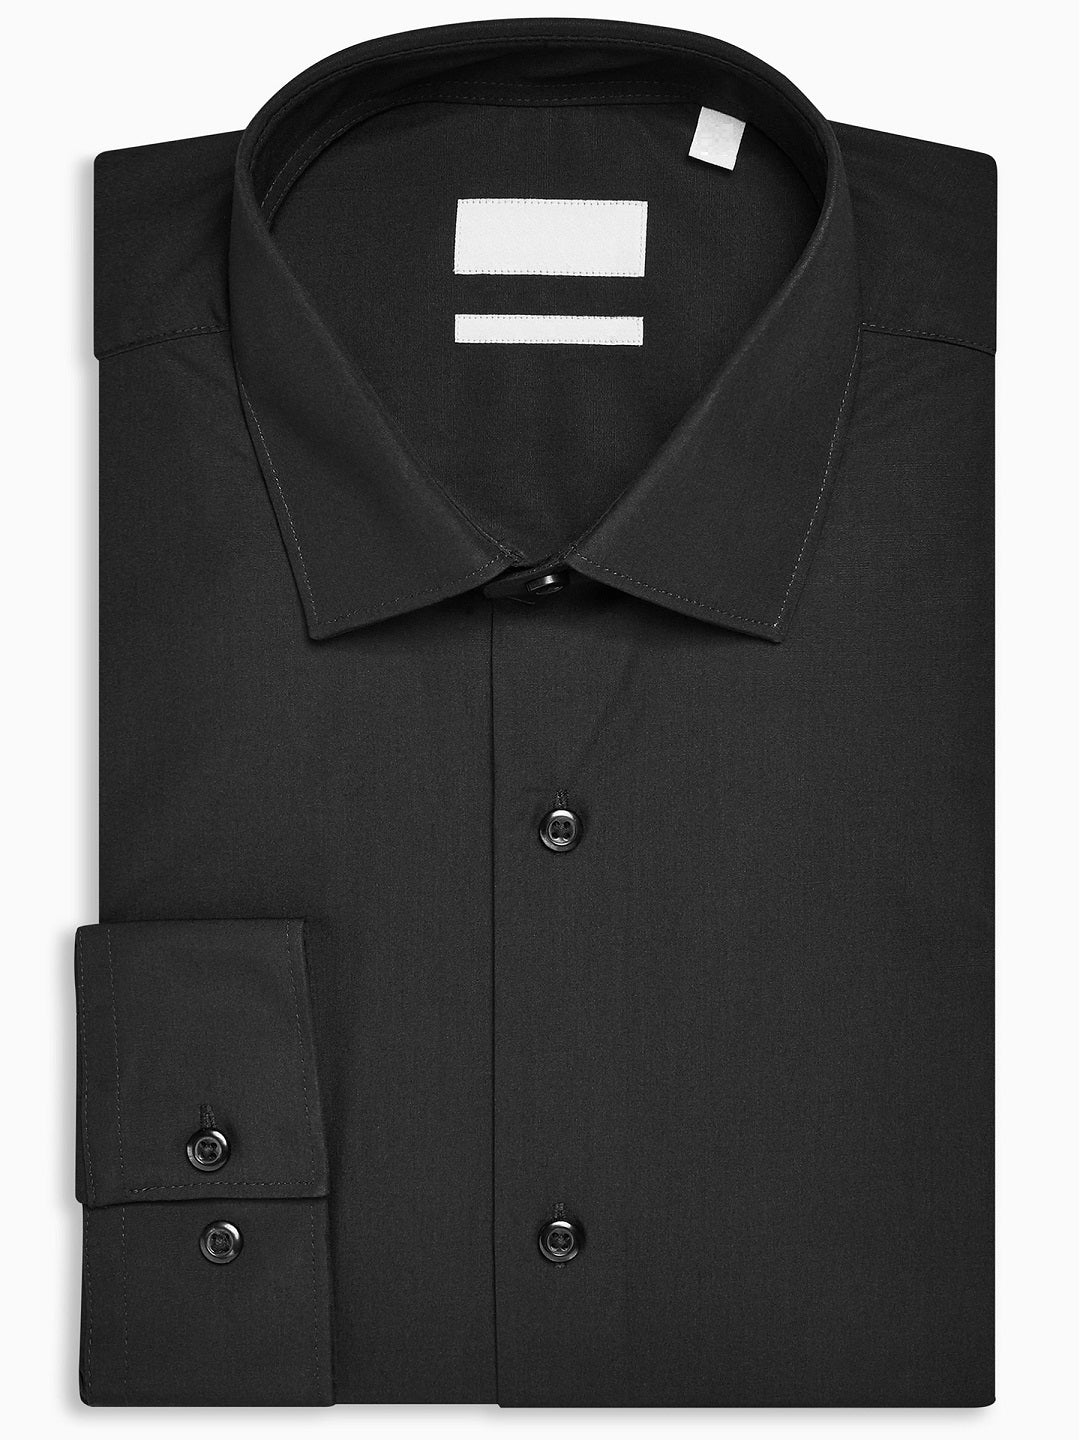 Premium Black Formal Oxford Cotton Shirt Code-1207